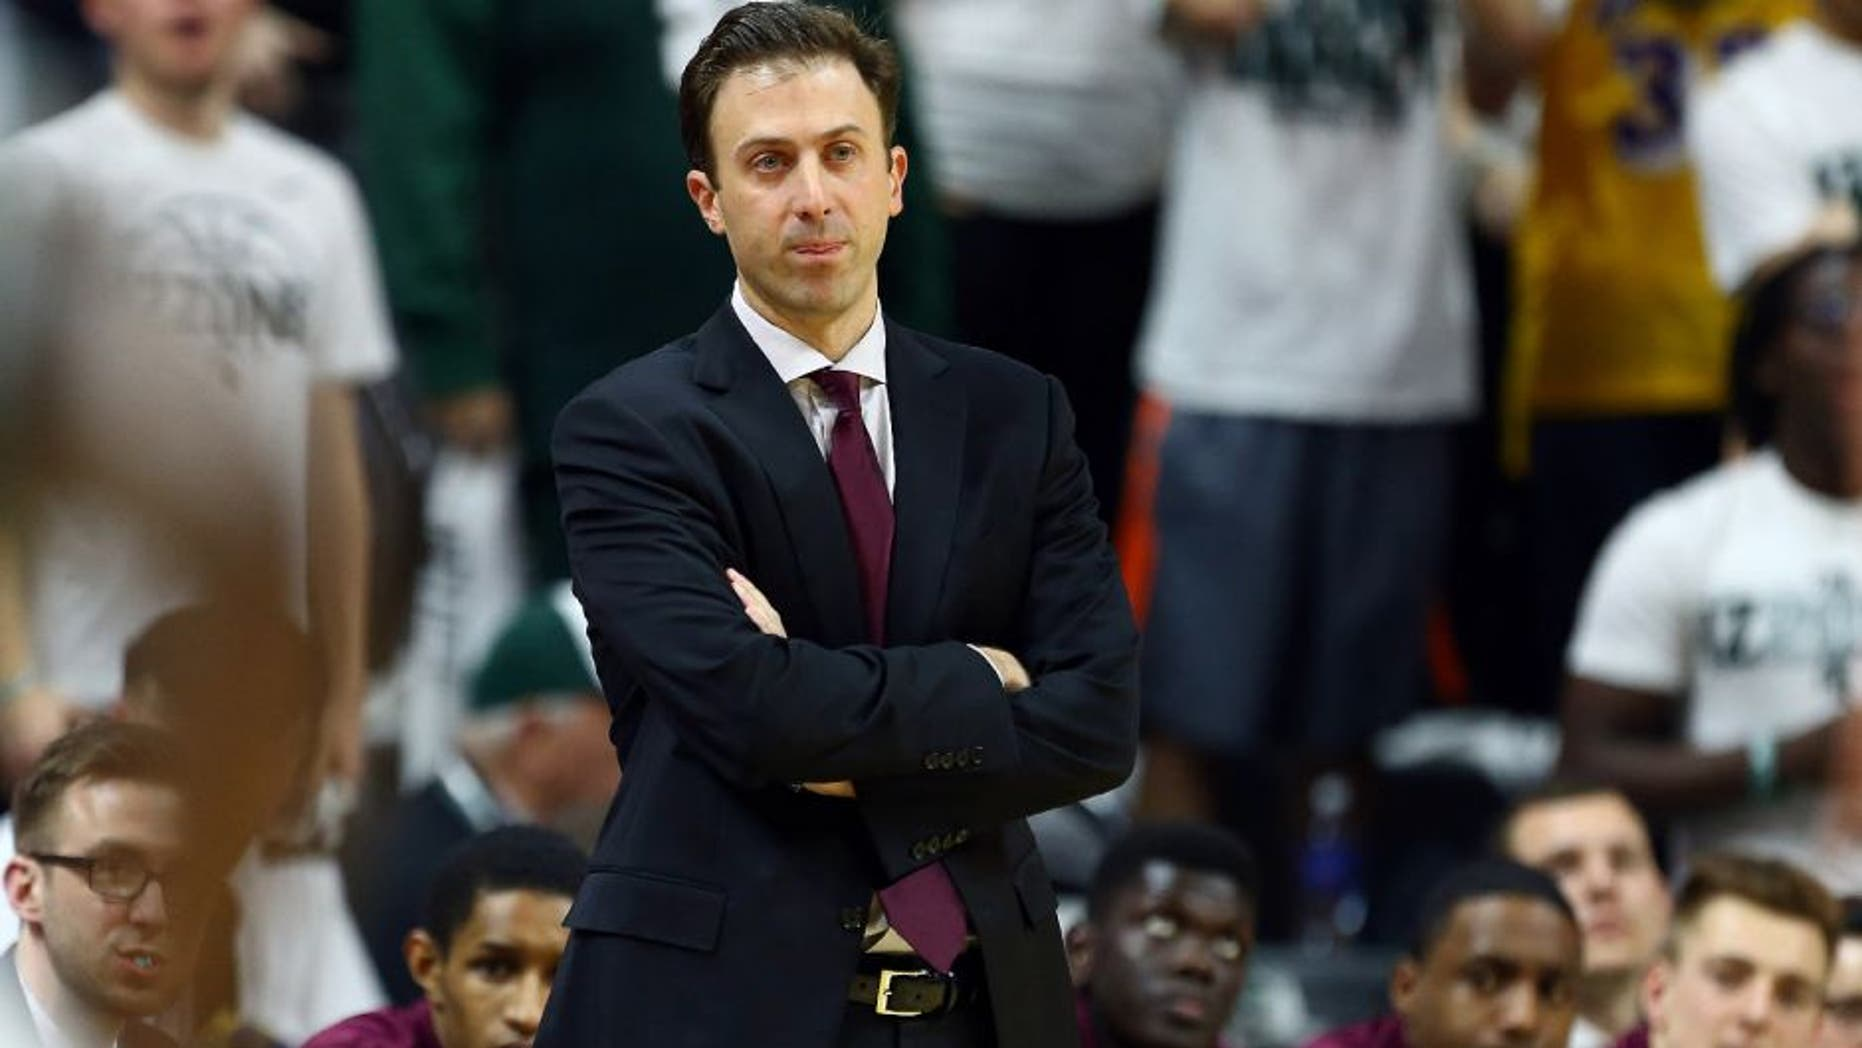 Feb 26, 2015; East Lansing, MI, USA; Minnesota Golden Gophers head coach Richard Pitino reacts to a play during the 1st half of a game at Jack Breslin Student Events Center. Mandatory Credit: Mike Carter-USA TODAY Sports